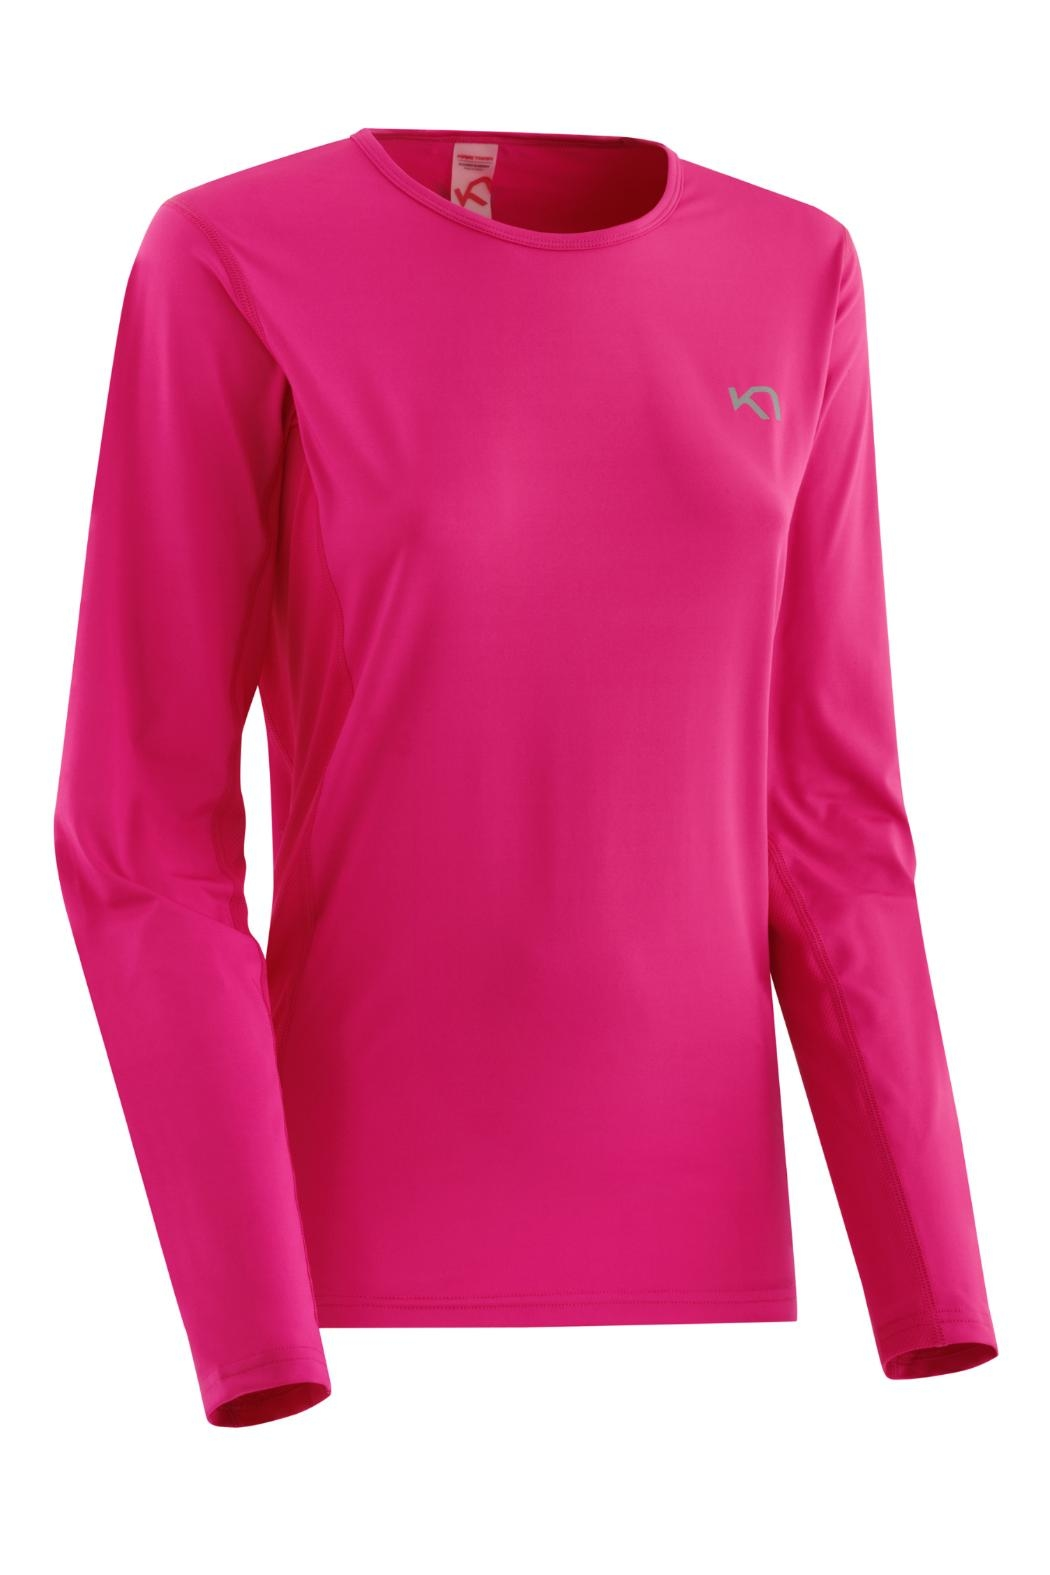 Kari Traa Nora Long Sleeve Top - Front Cropped Image